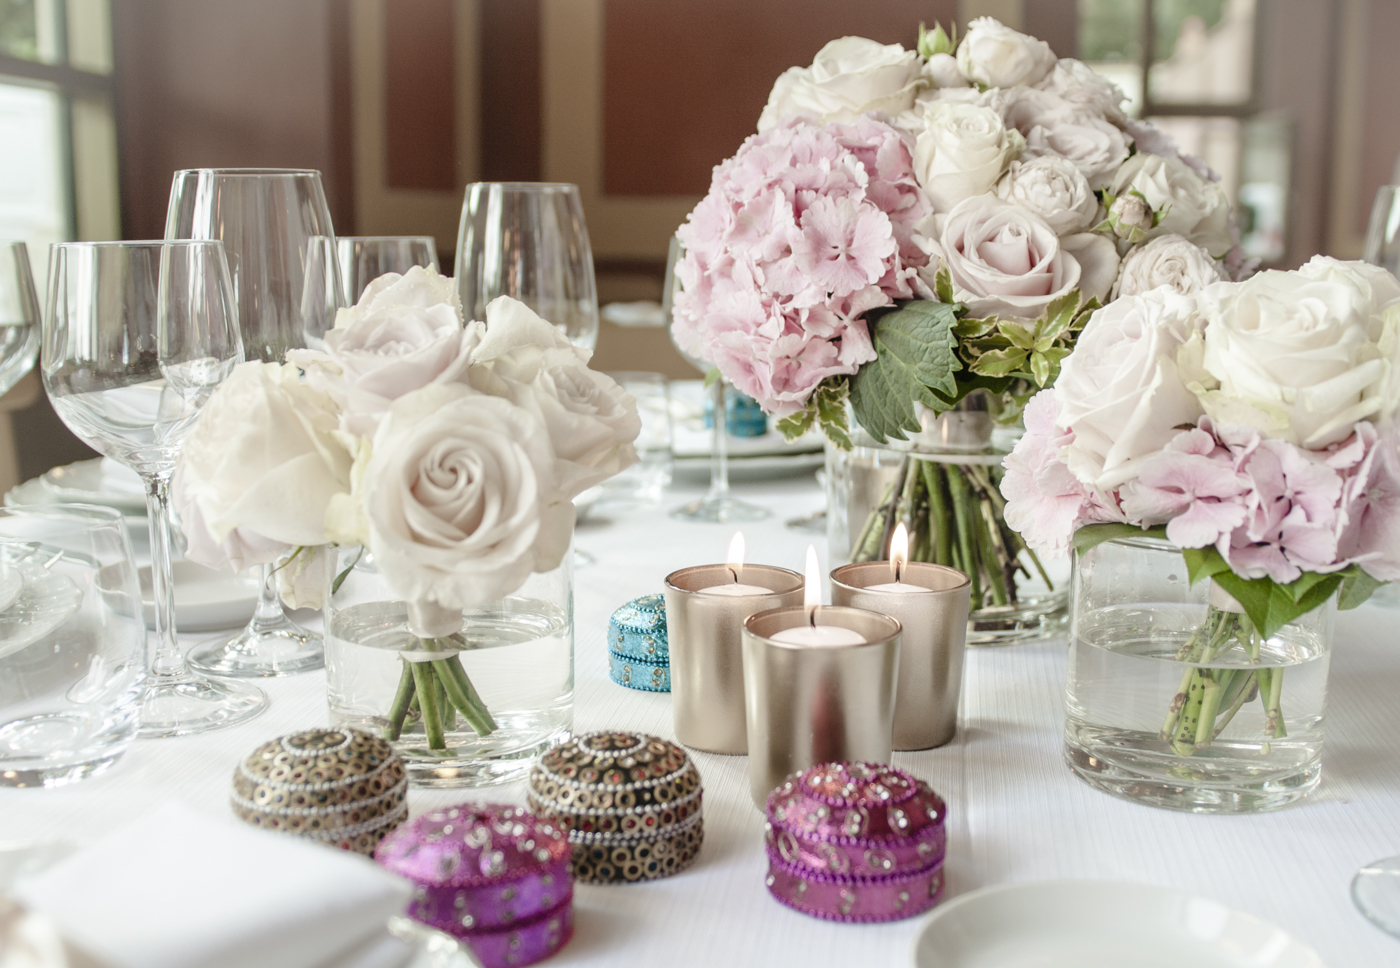 Wedding flower roses and hydrangeas white and pale pink wedding wedding flower roses and hydrangeas white and pale pink mightylinksfo